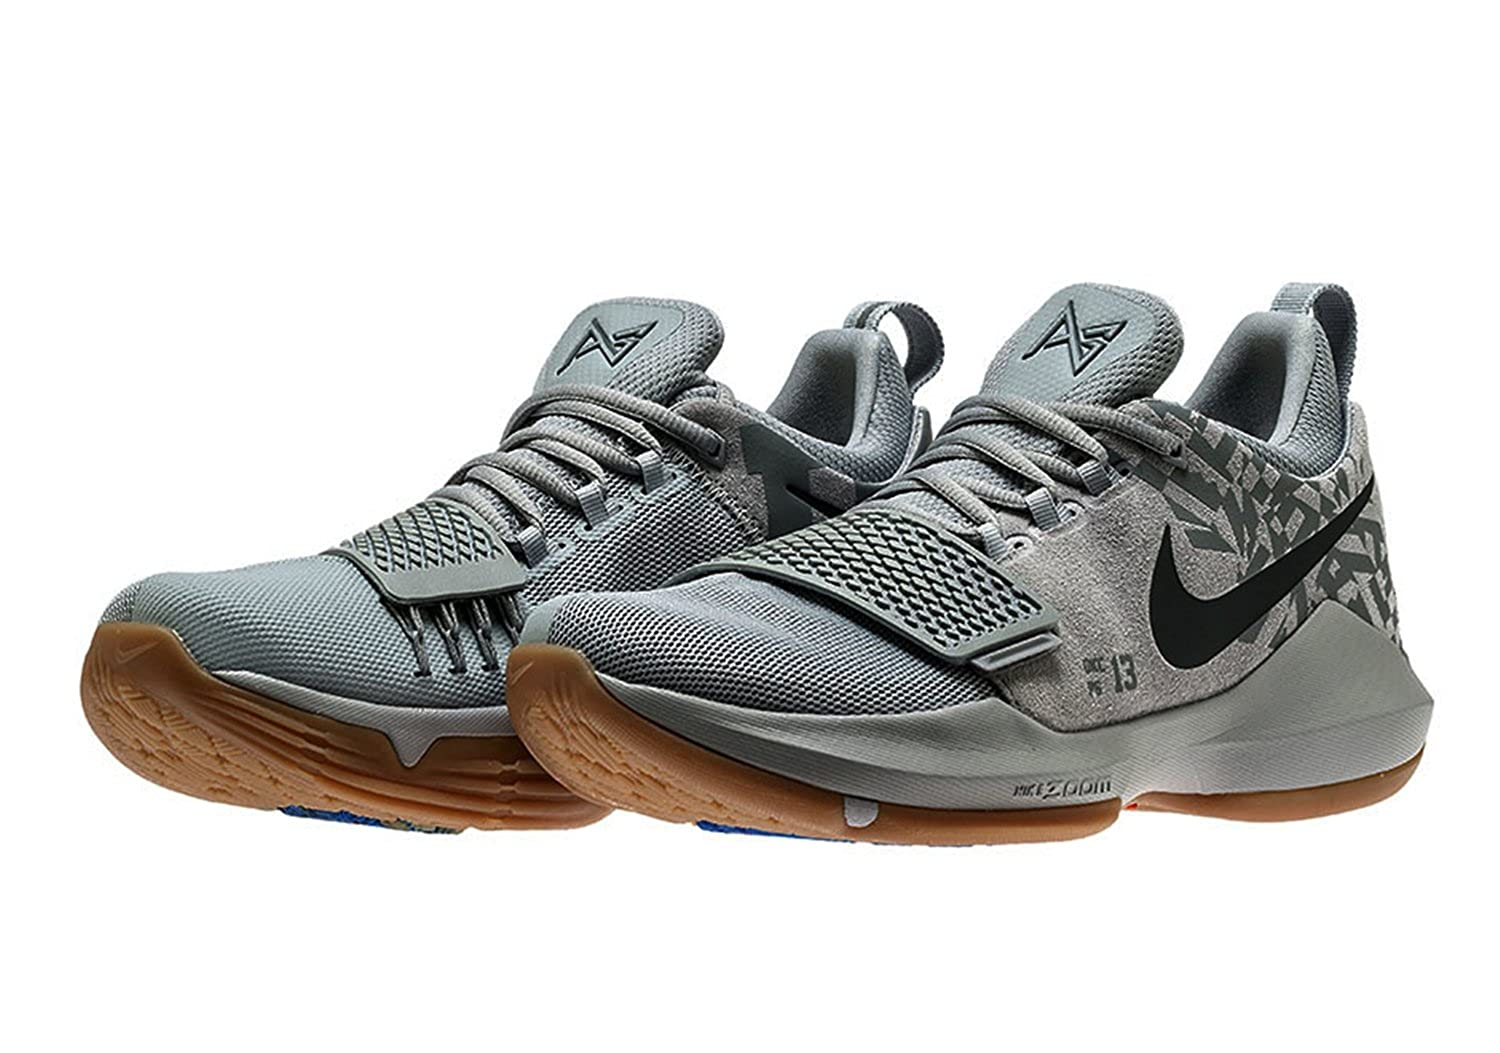 the latest 3af0d b8852 ... Nike PG 1 Superstition Basketball Shoes Mens Wolf GreyWolf Grey-Cool  Grey New ...